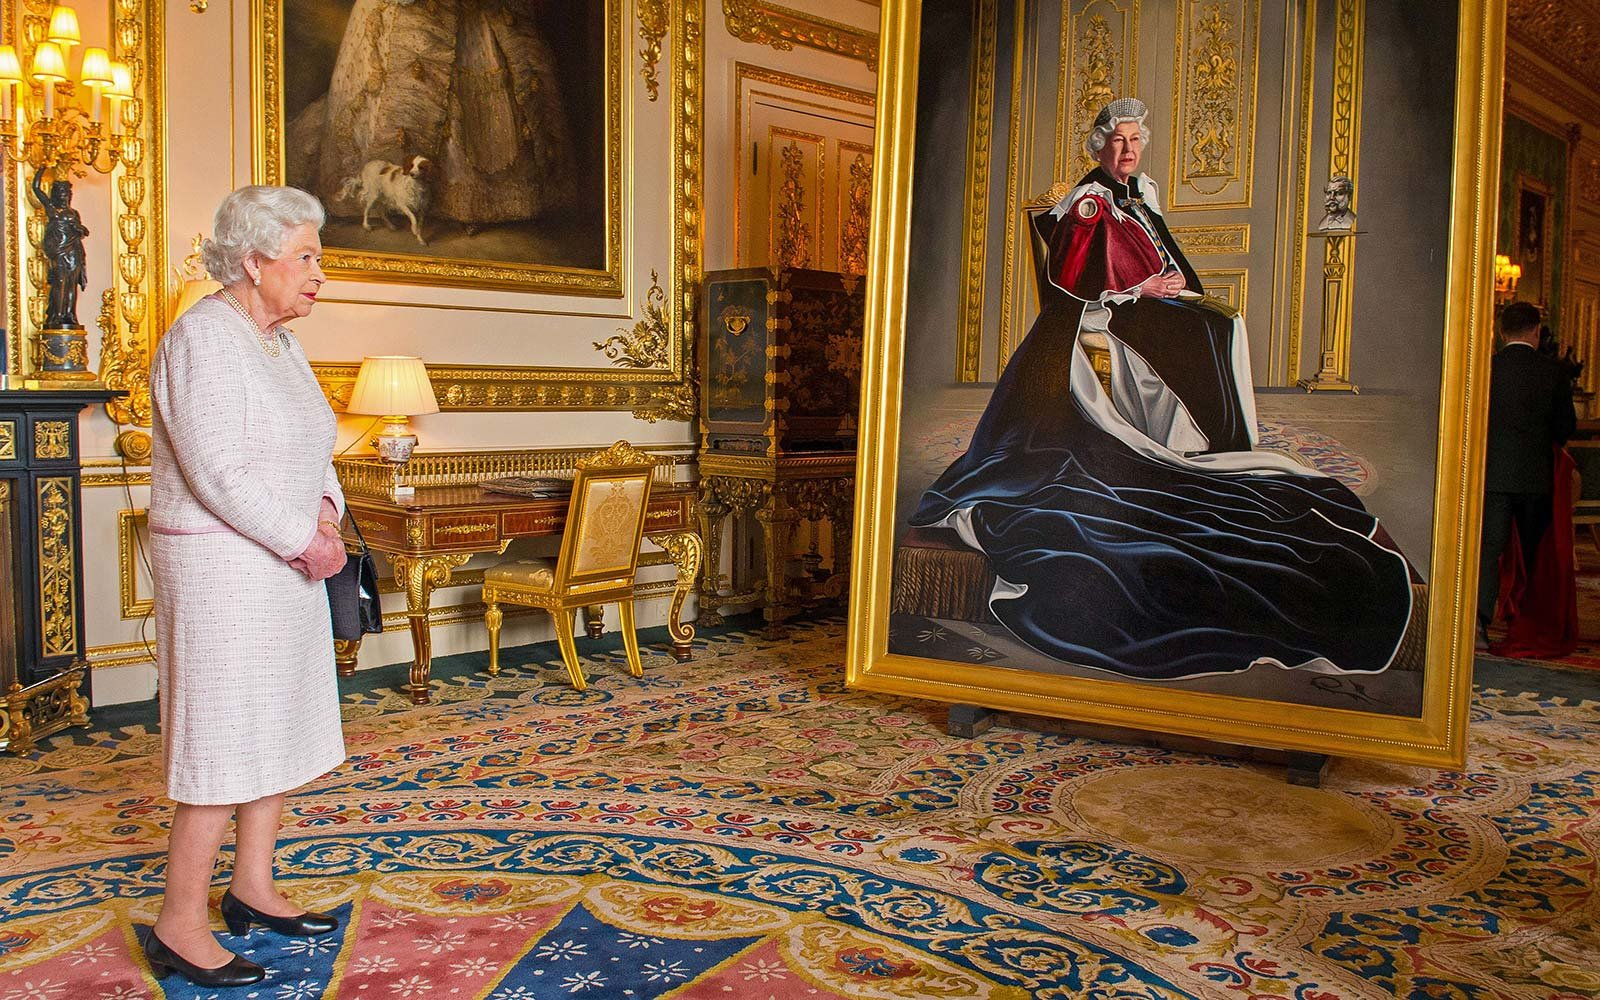 queen elizabeth royal art intern job windsor castle england uk